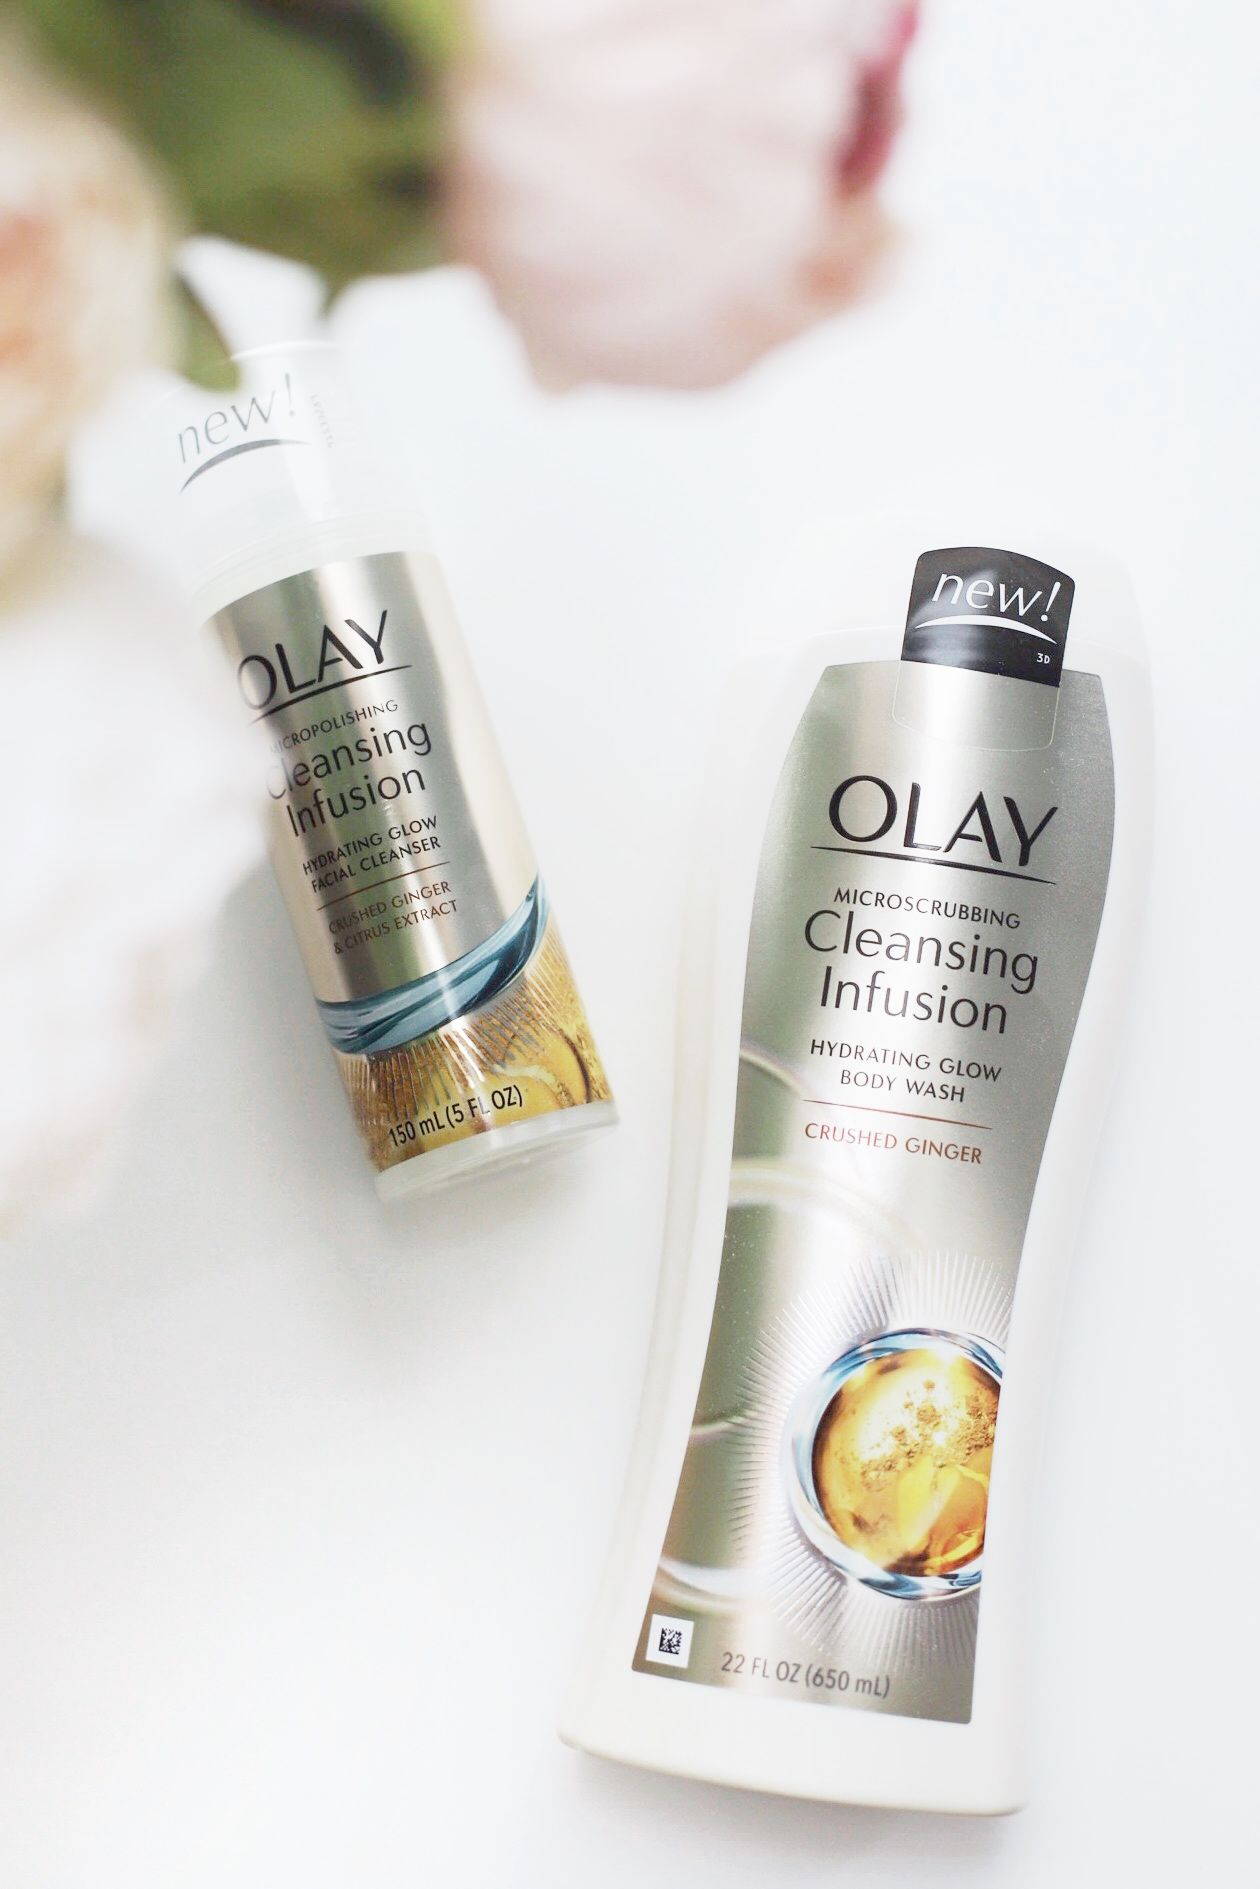 The results are in! olay Cleansing Infusions collection